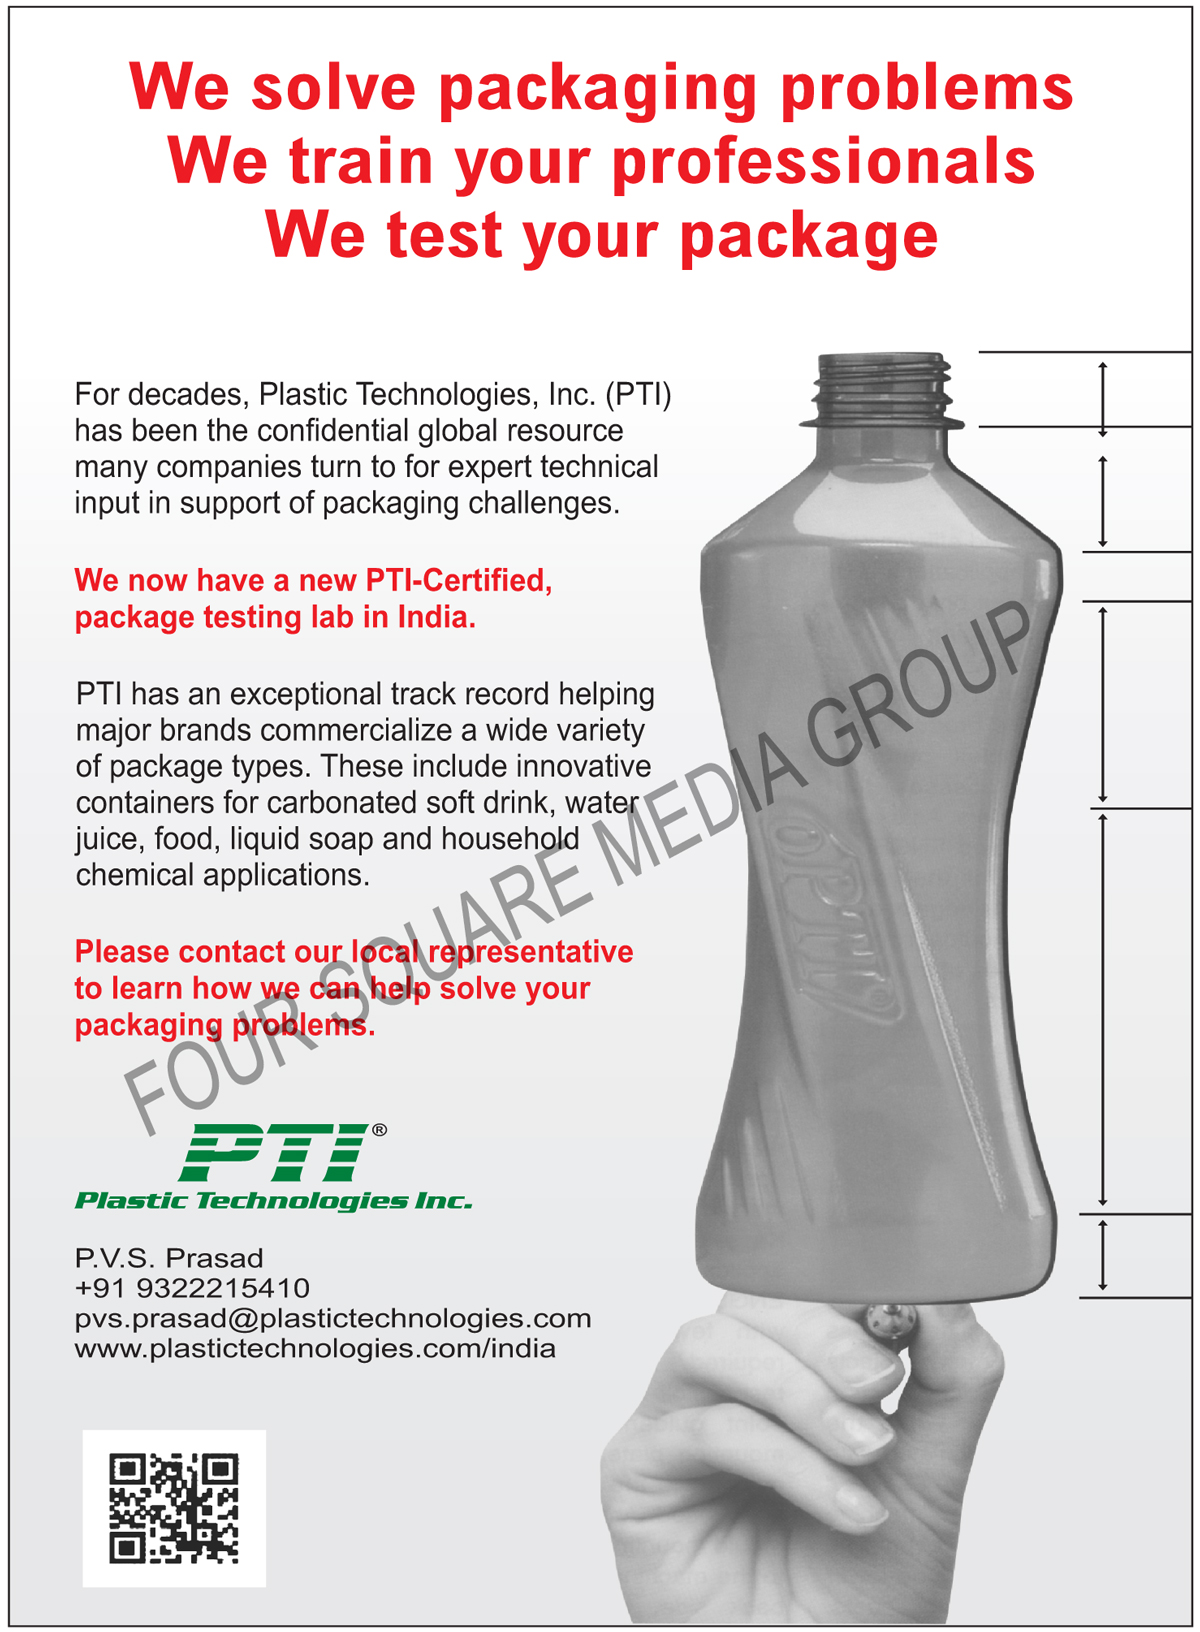 Service Provider of Technical Input in Support of Packaging Challenges